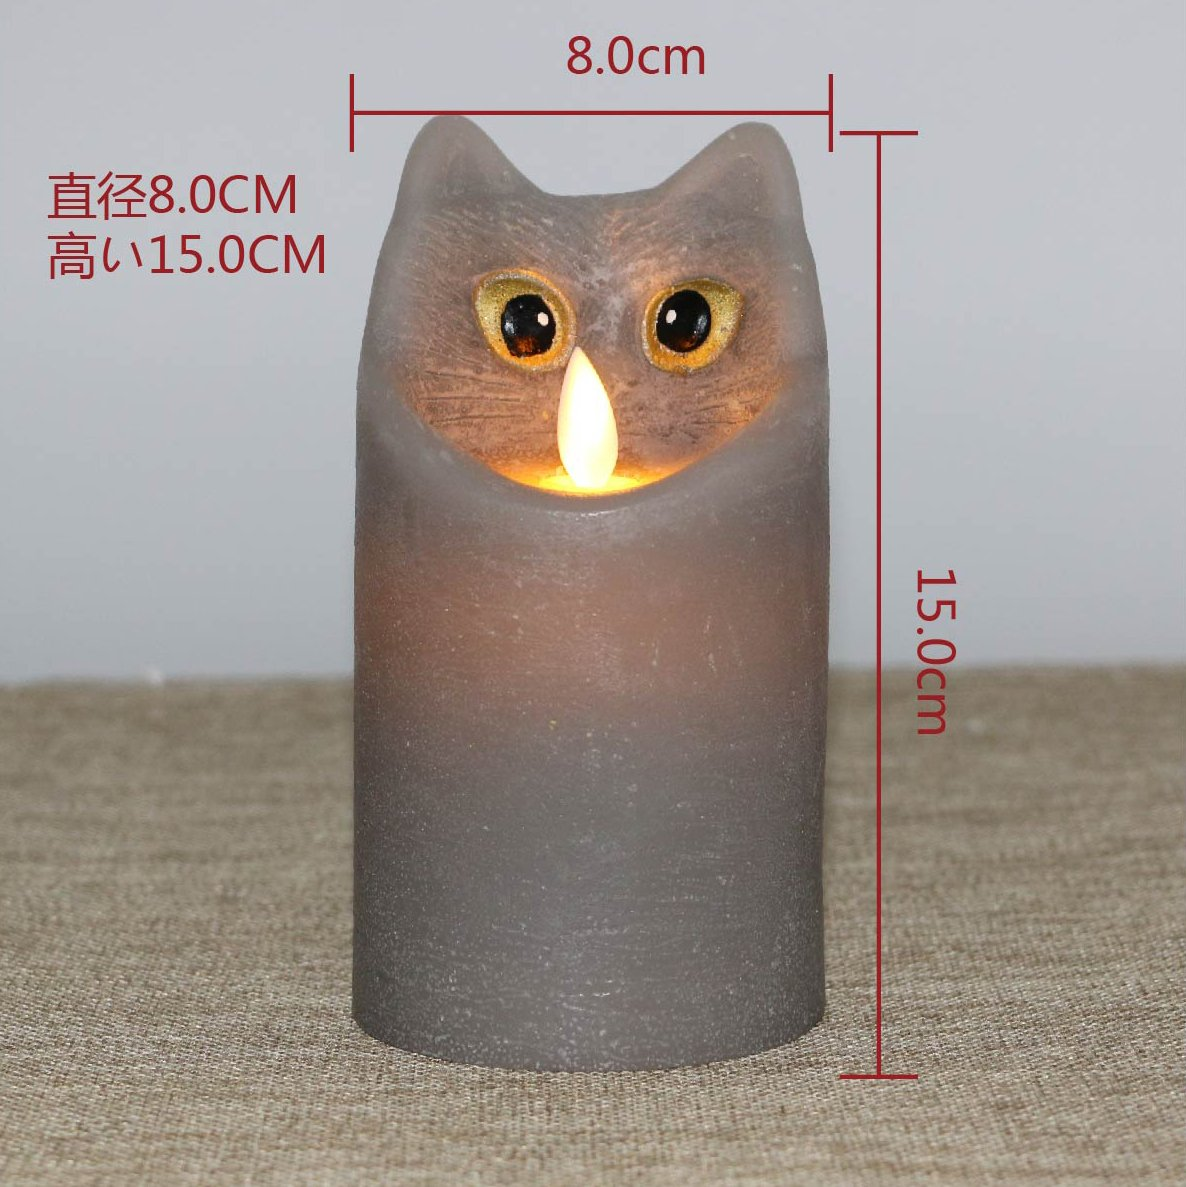 Kitch Aroma Marble Grey Color Cartoon Cat Flameless Candle with Timer For Birthday Gifts,Dia 3'' x H6'',Pack of 2 by Kitch Aroma (Image #7)